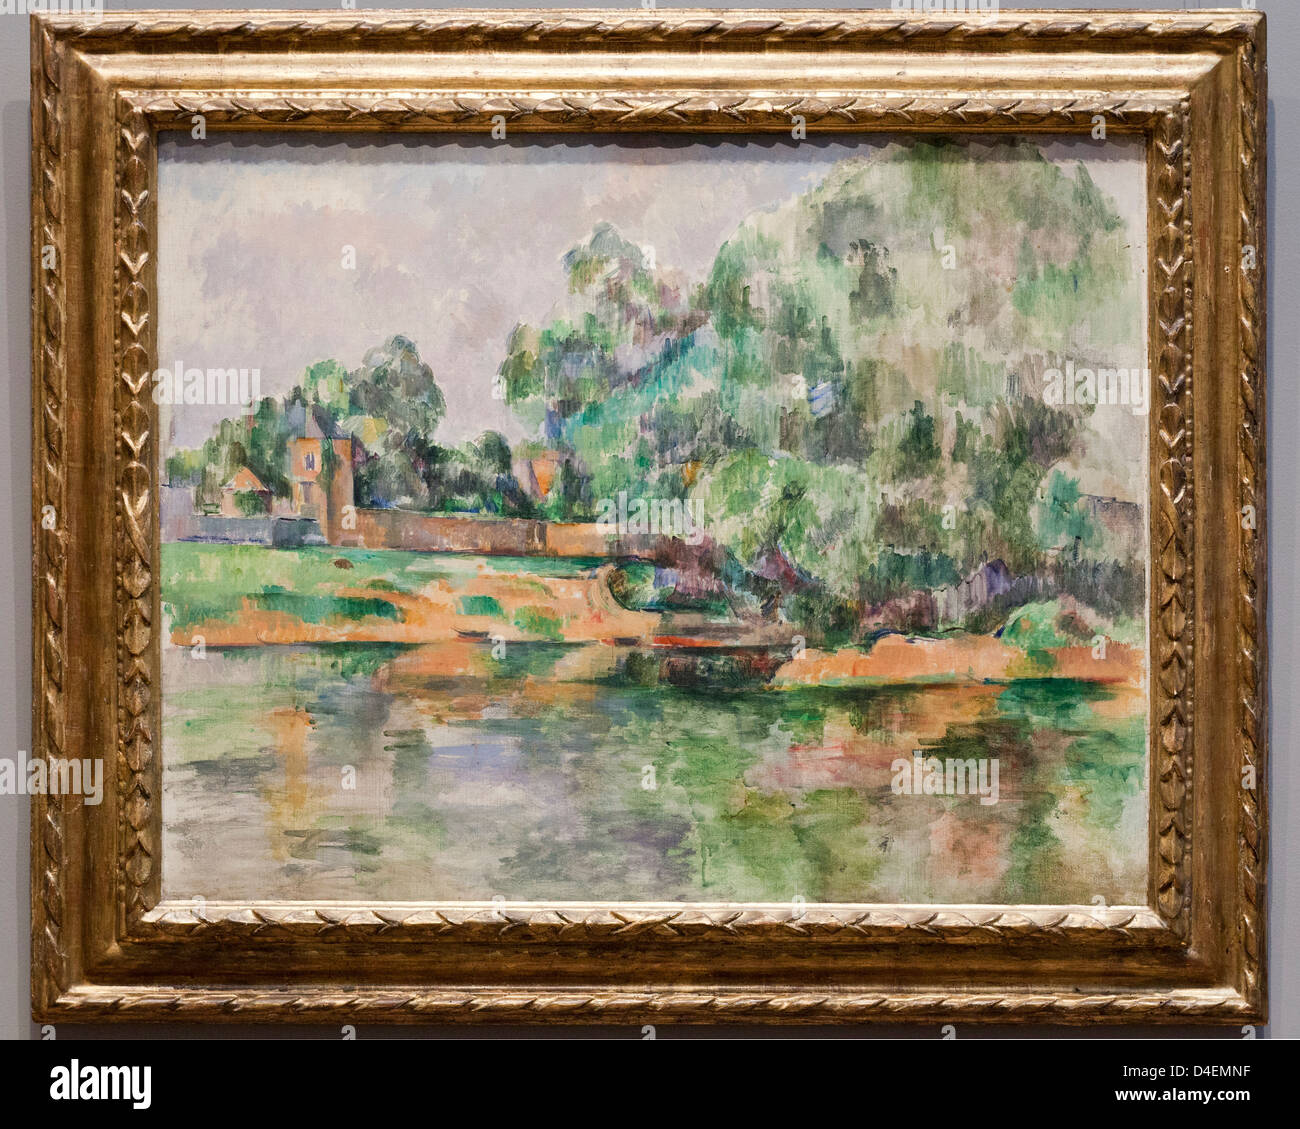 Riverbank by Paul Cezanne, 1895 - Stock Image